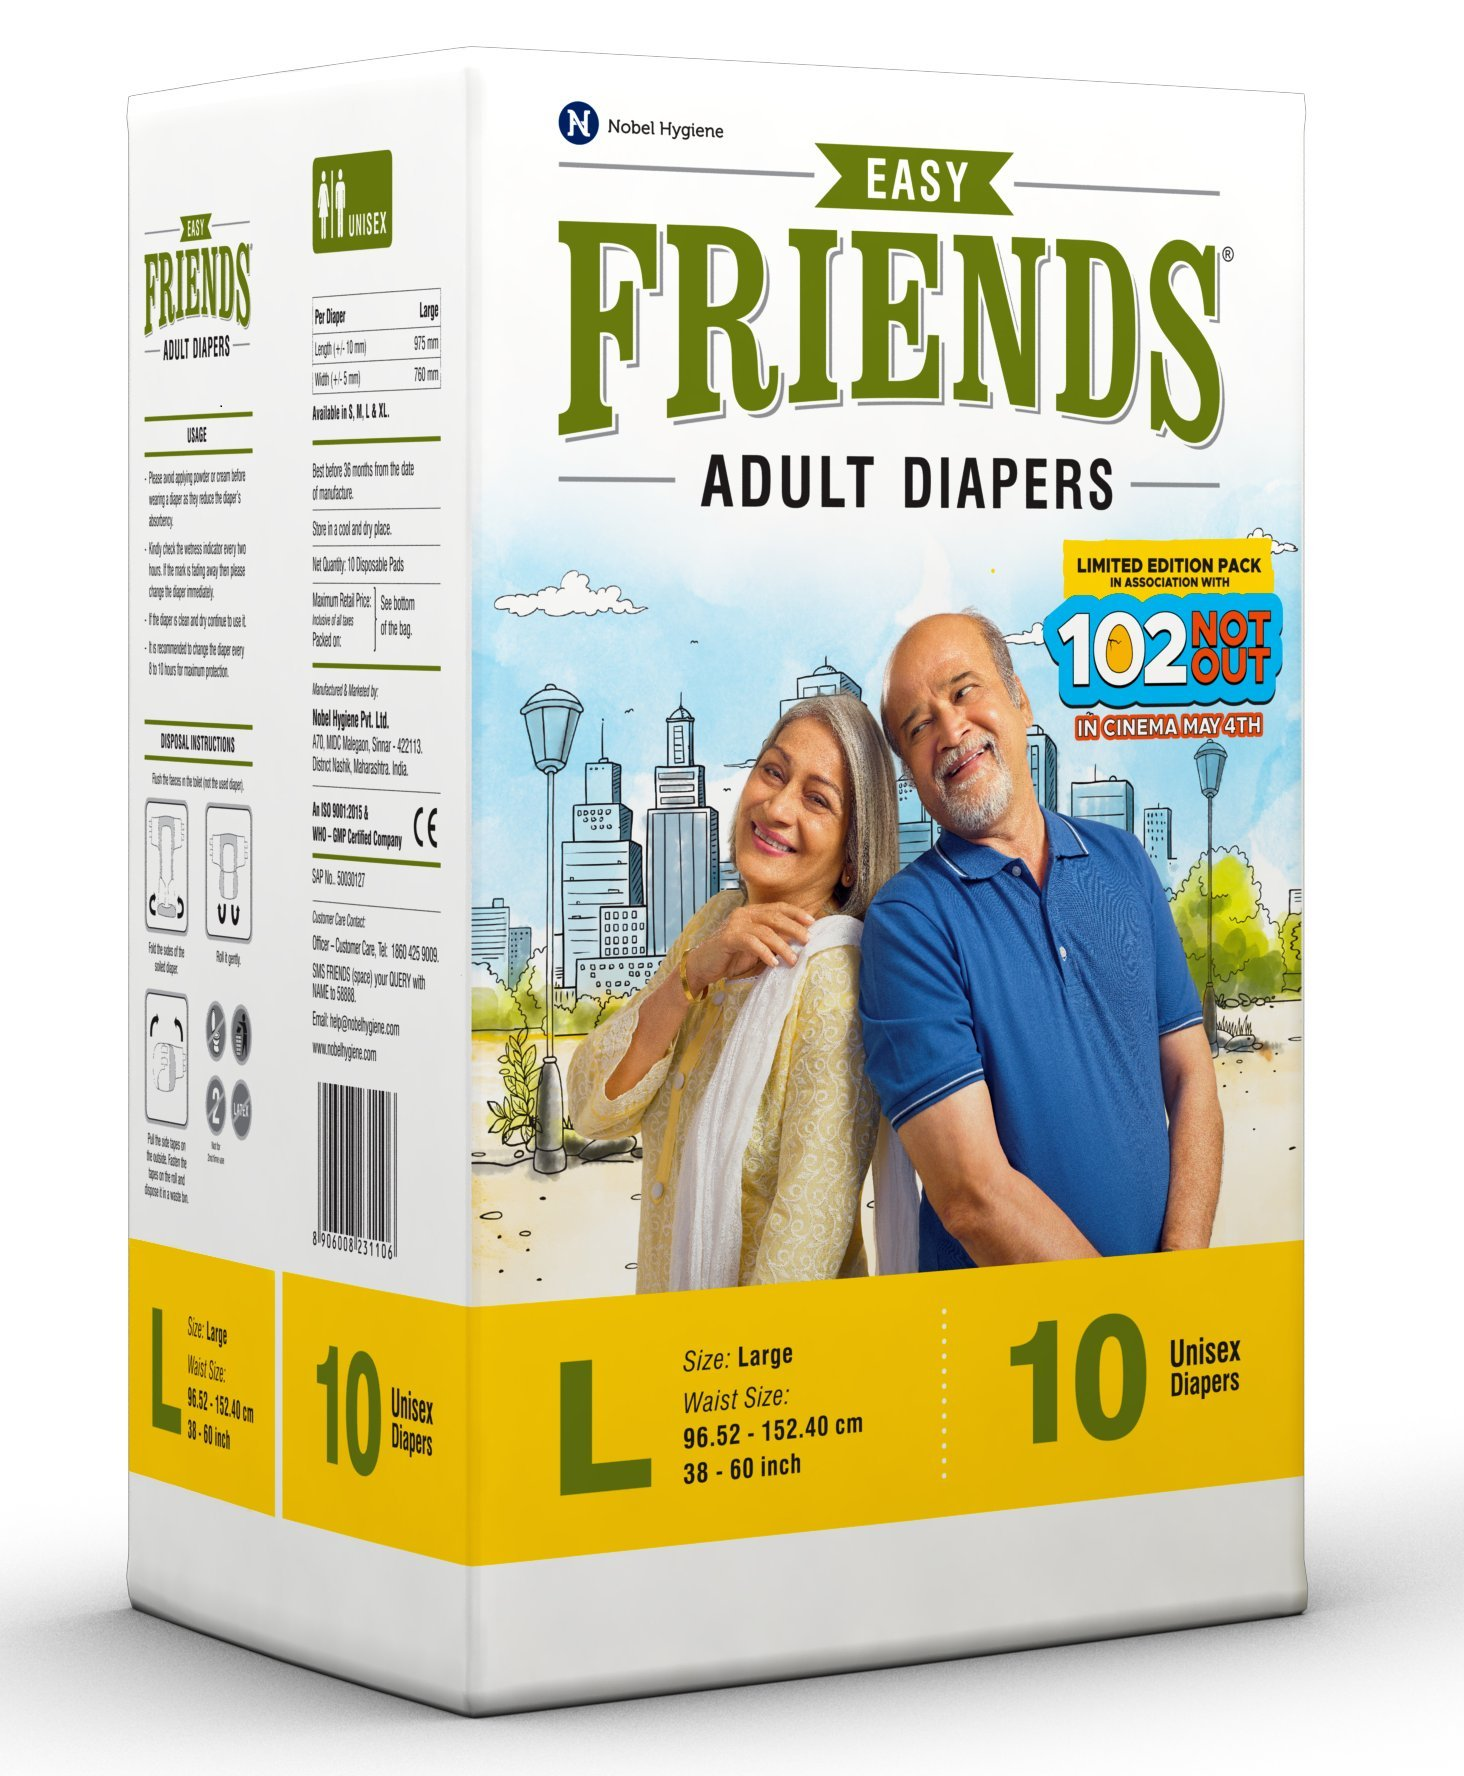 Friends-Large-10s-Pack-Adult-Diaper-Limited-Edition-102-Not-Out-Pack